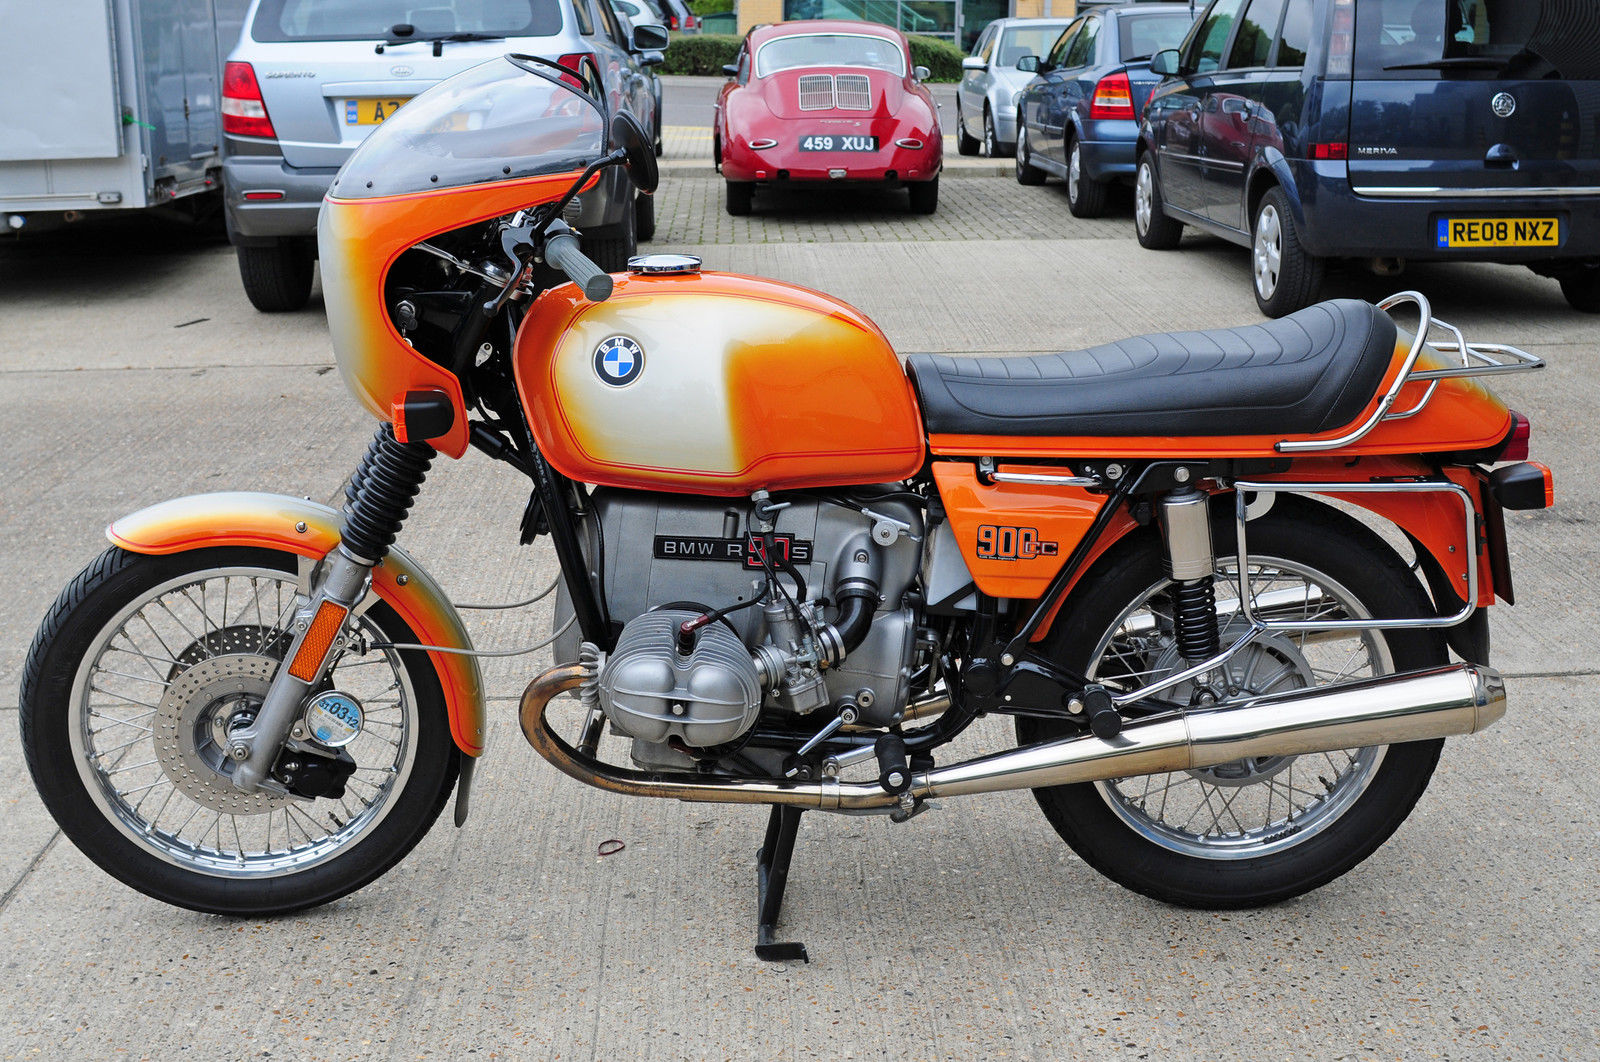 BMW R90S - 1976 - Left Side View, Mufflers, Exhaust, Engine and Gearbox.